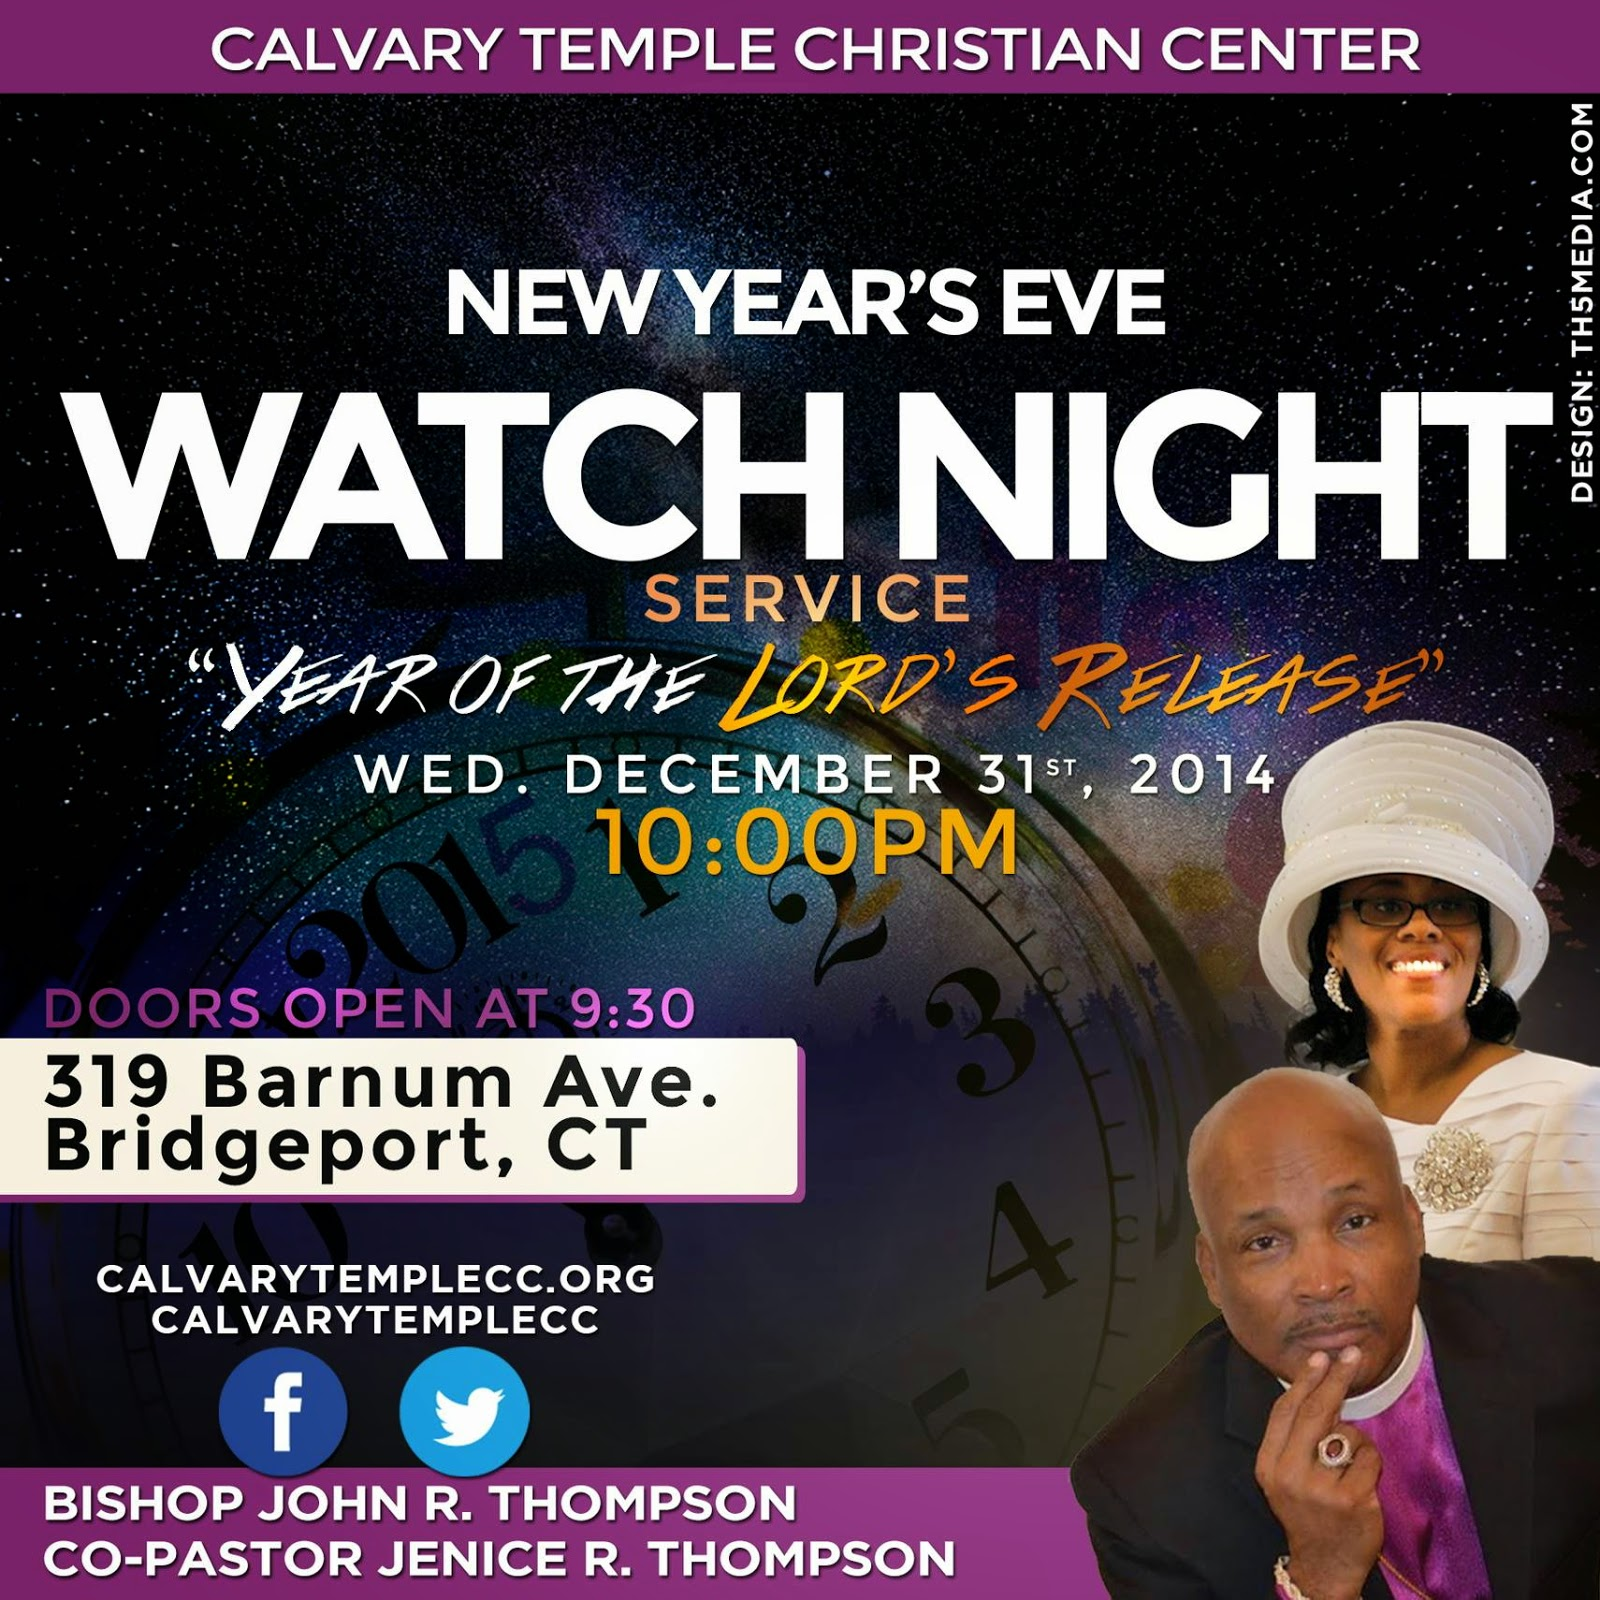 calvary temple christian center  new year s eve watch night service